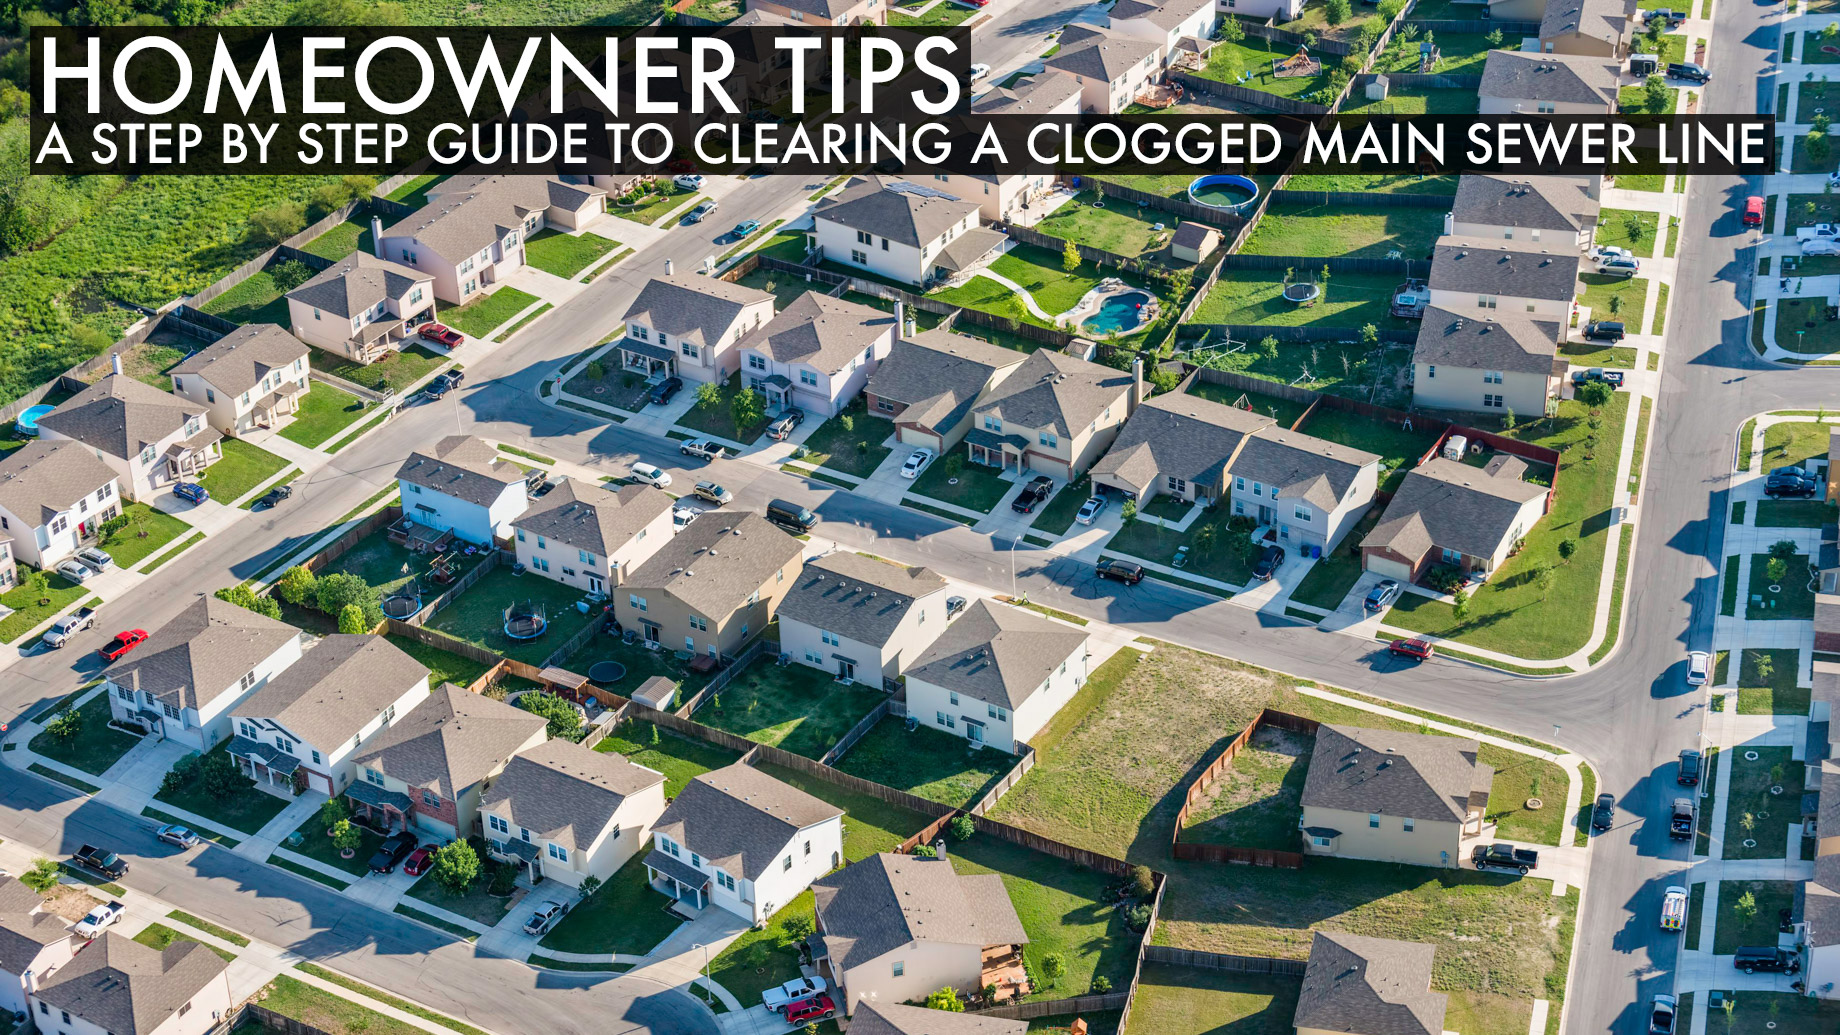 Homeowner Tips - A Step by Step Guide to Clearing a Clogged Main Sewer Line